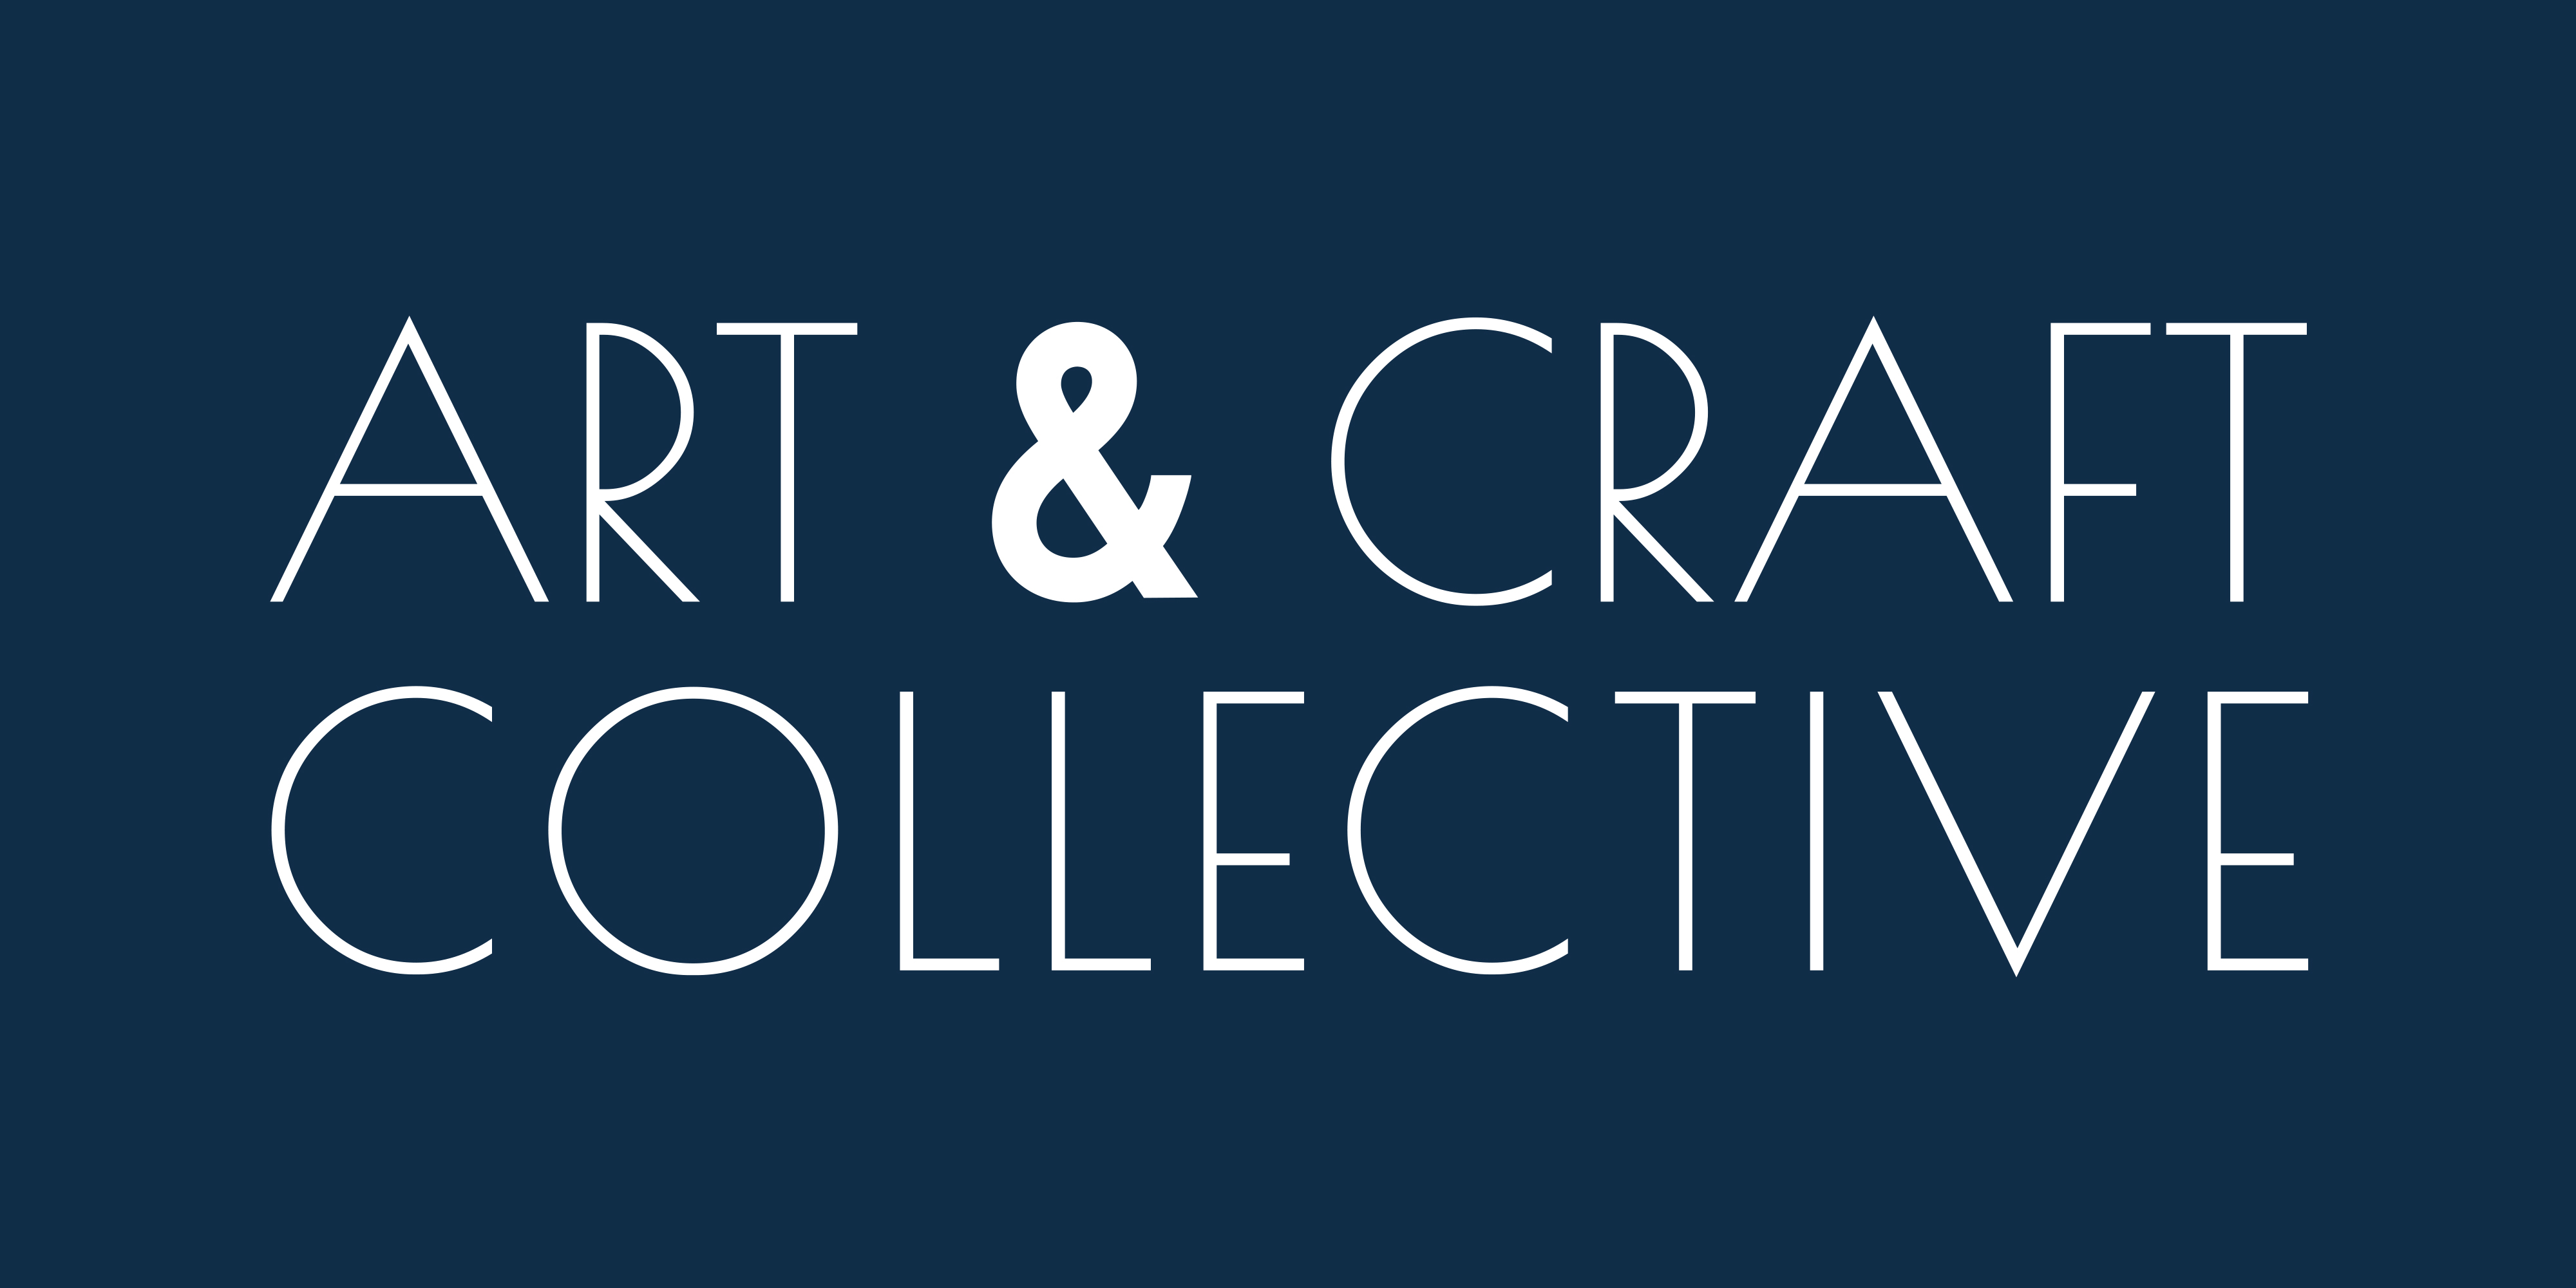 Art & Craft Collective